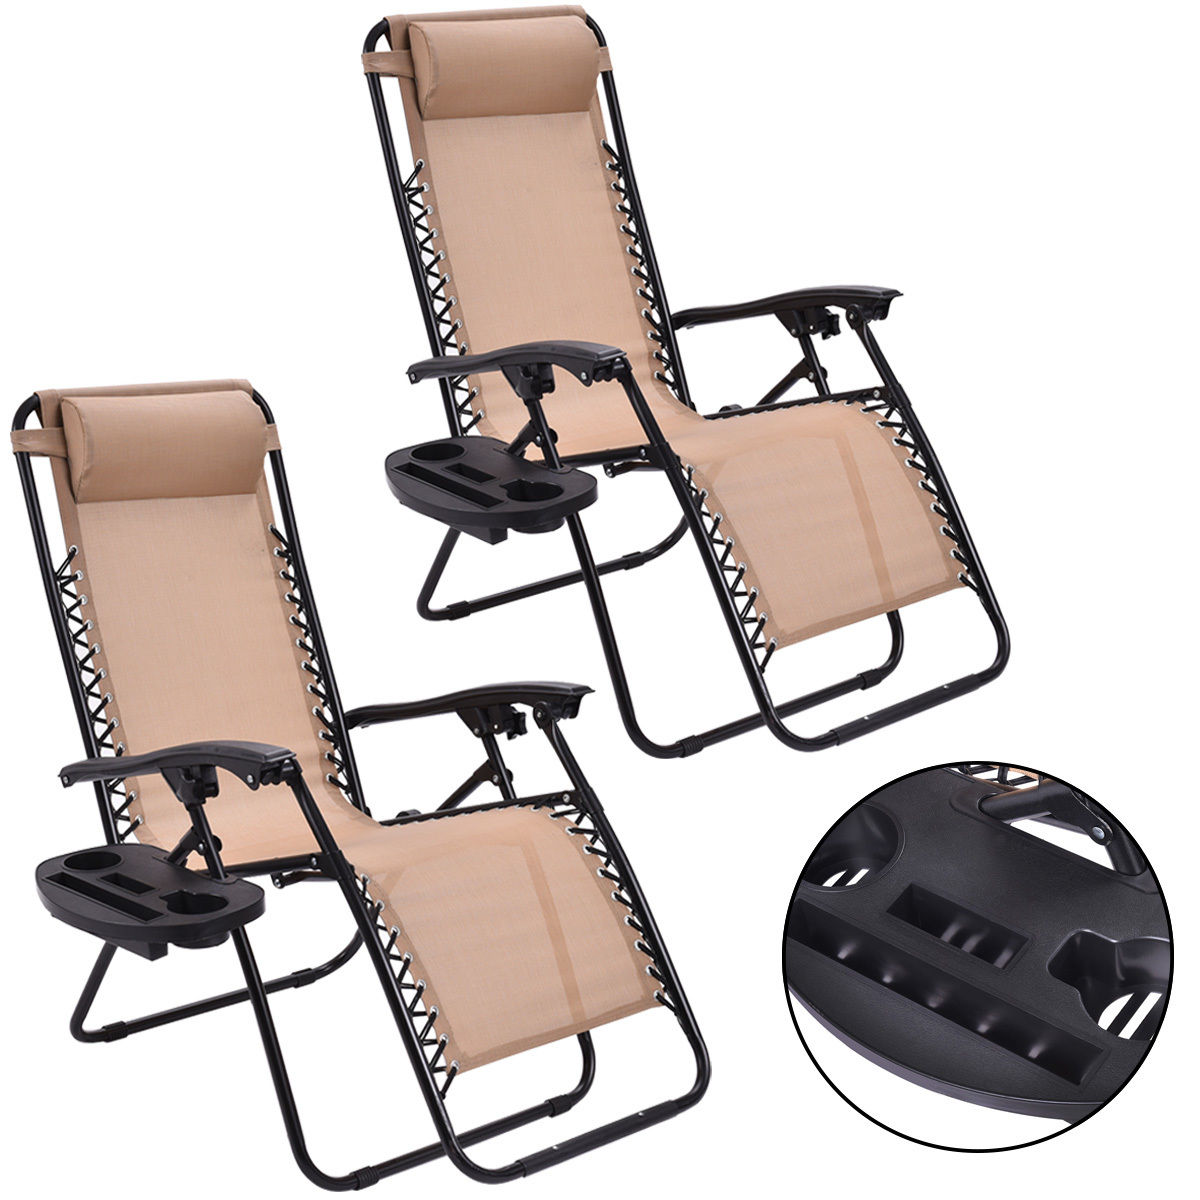 Costway 2PC Zero Gravity Chairs Lounge Patio Folding Recliner Beige W/Cup Holder